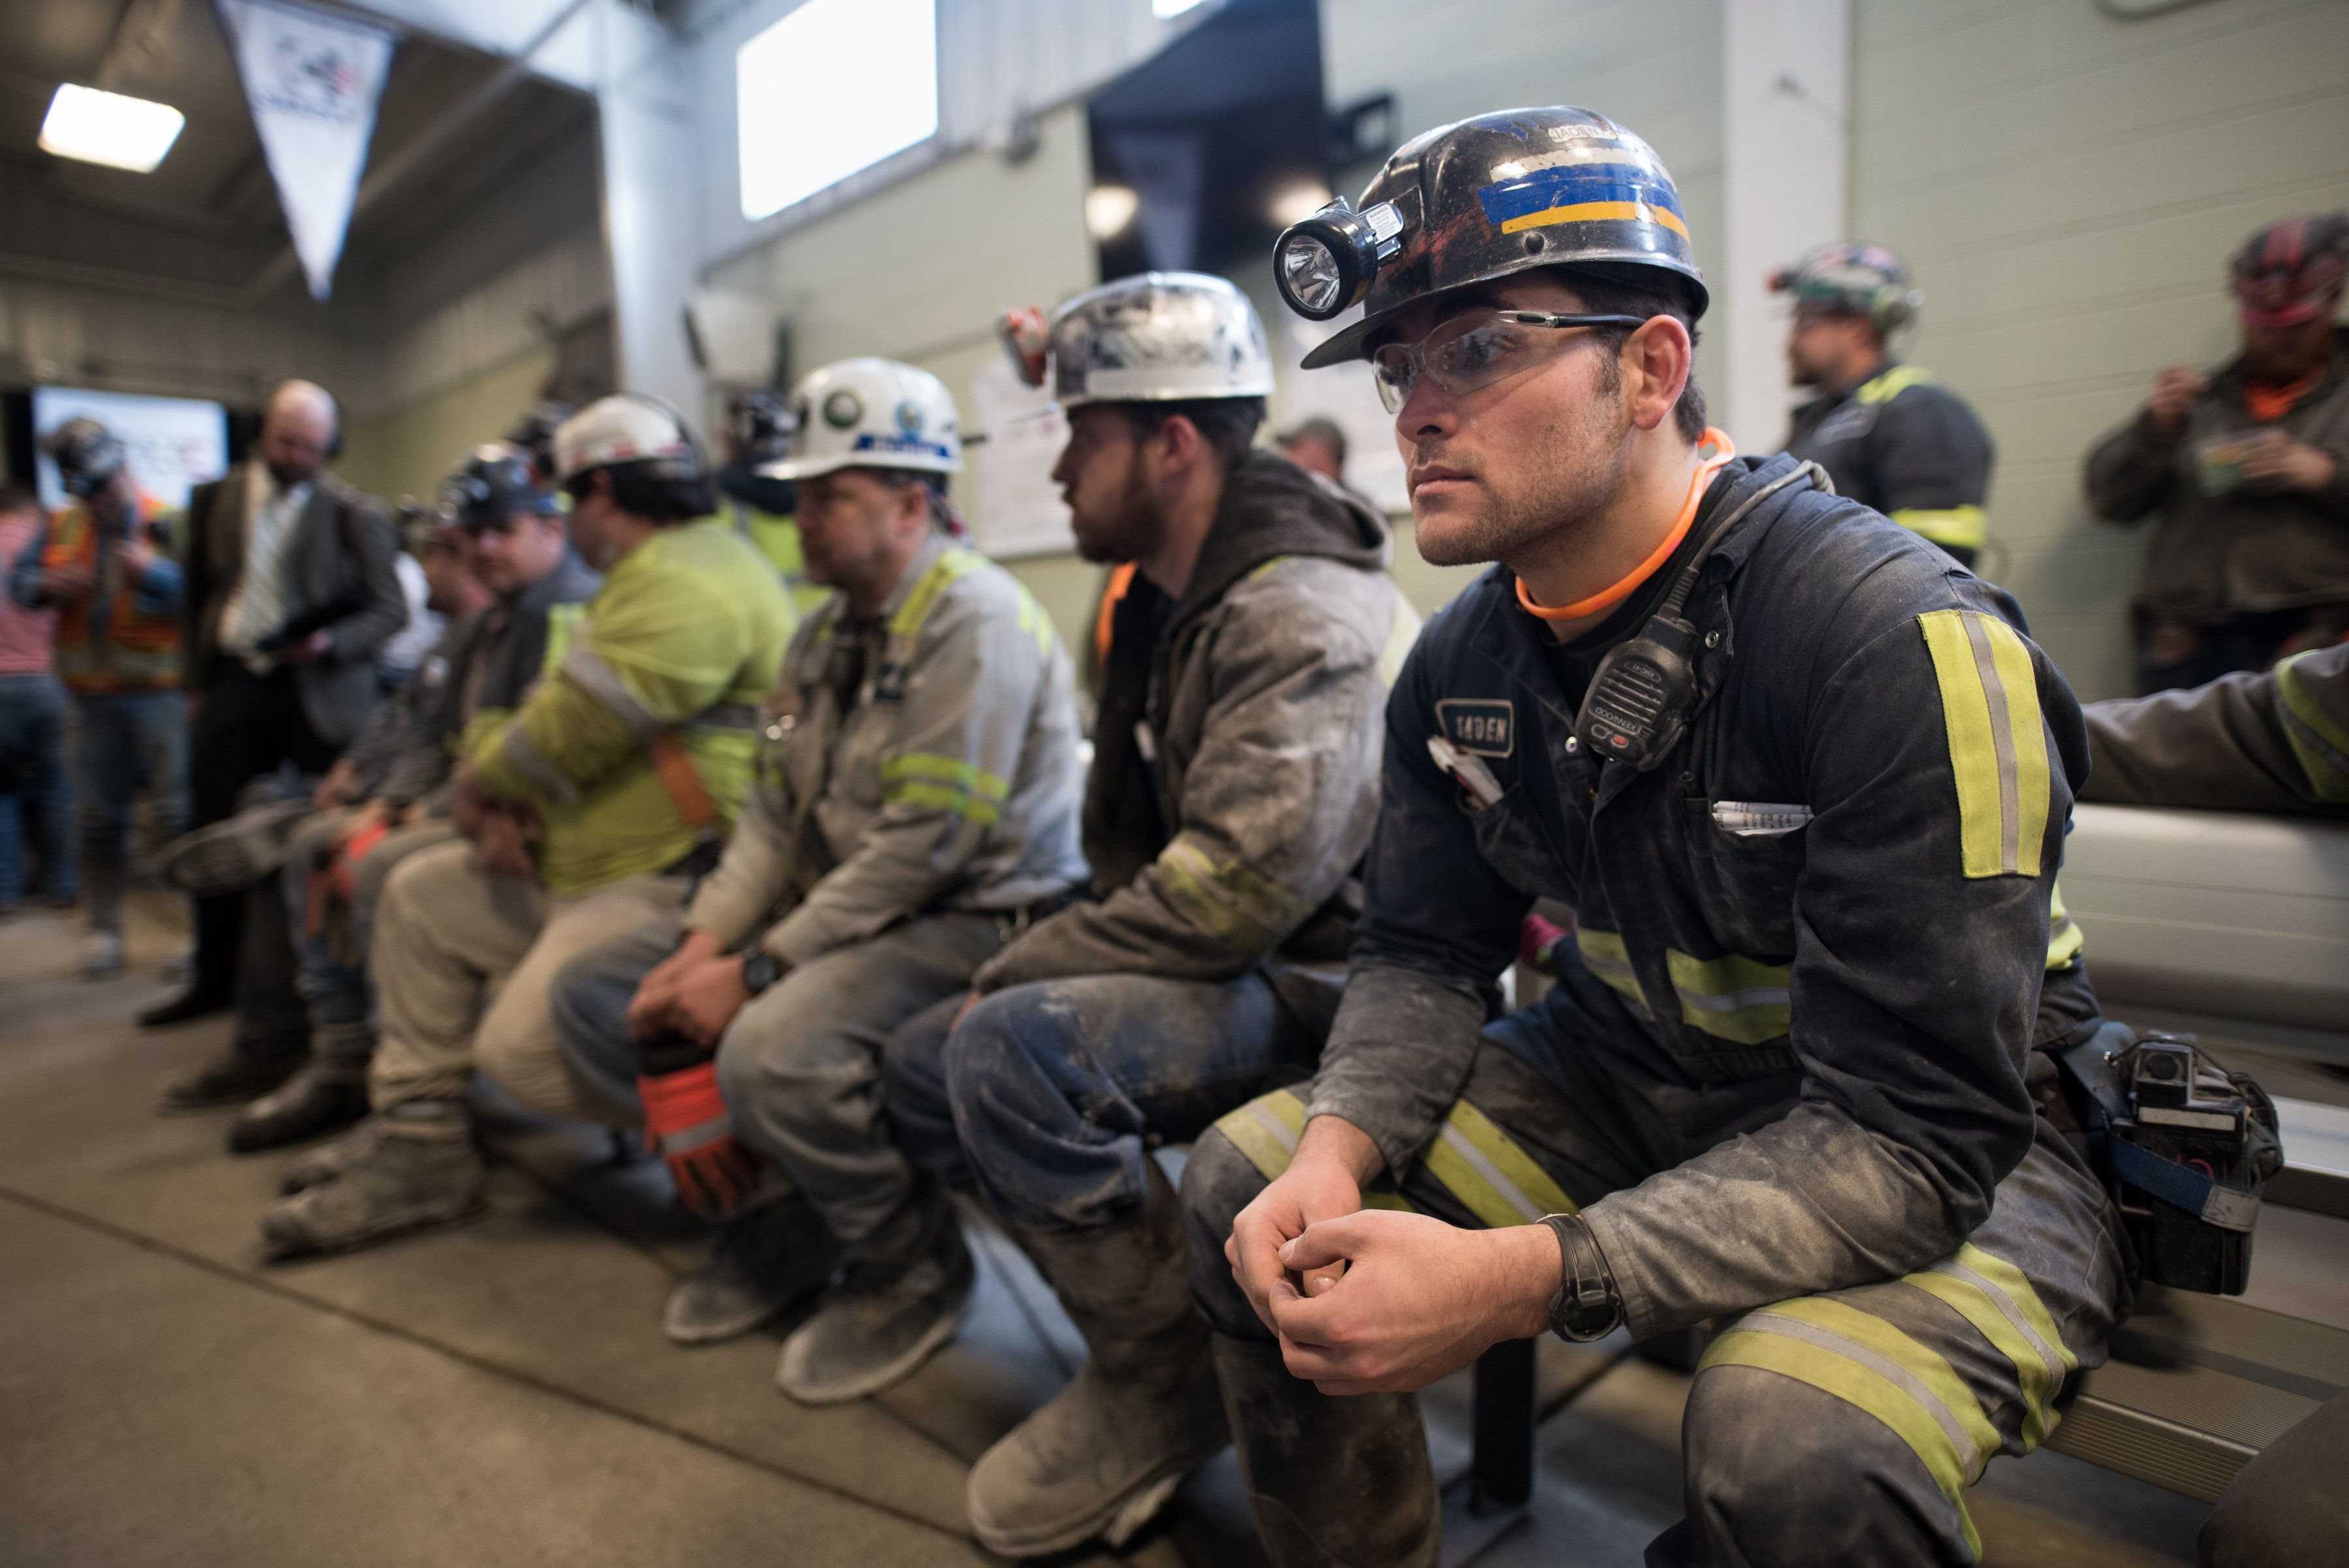 SYCAMORE, PA - APRIL 13:  Coal miner Jaden Fredrickson, 26, of Cheat Lake, W.Va., waits prior to the arrival of U.S. Environmental Protection Agency Administrator Scott Pruitt who visited the Harvey Mine on April 13, 2017 in Sycamore, Pennsylvania. The Harvey Mine, owned by CNX Coal Resources, is part of the largest underground mining complex in the United States.  (Photo by Justin Merriman/Getty Images)